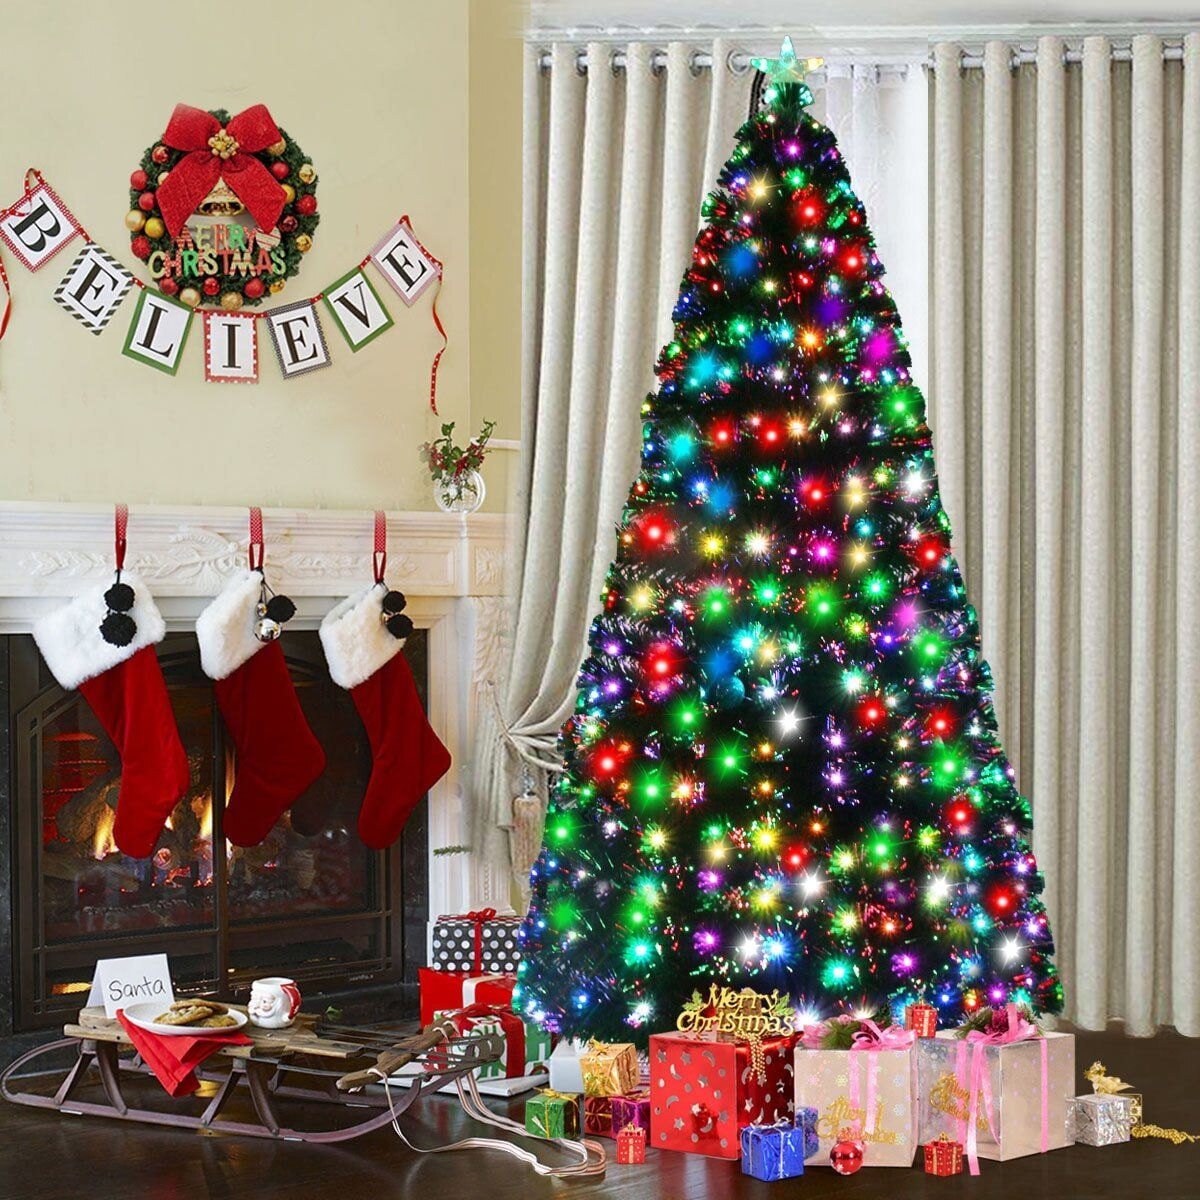 Putting Your Christmas Decorations Up Early Could Make You Happier! - 92.5 XTU